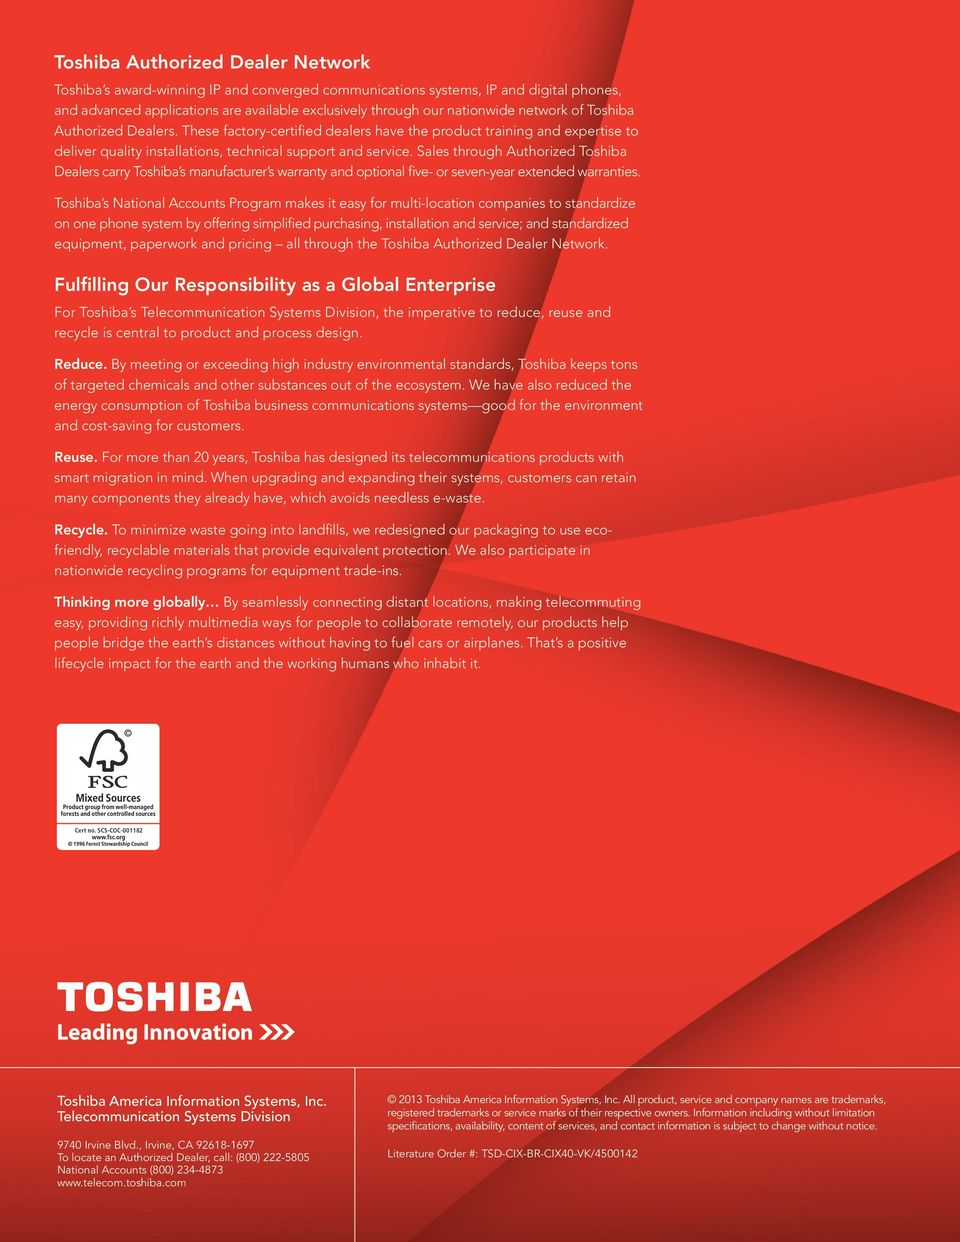 Sales through Authorized Toshiba Dealers carry Toshiba s manufacturer s warranty and optional five- or seven-year extended warranties.